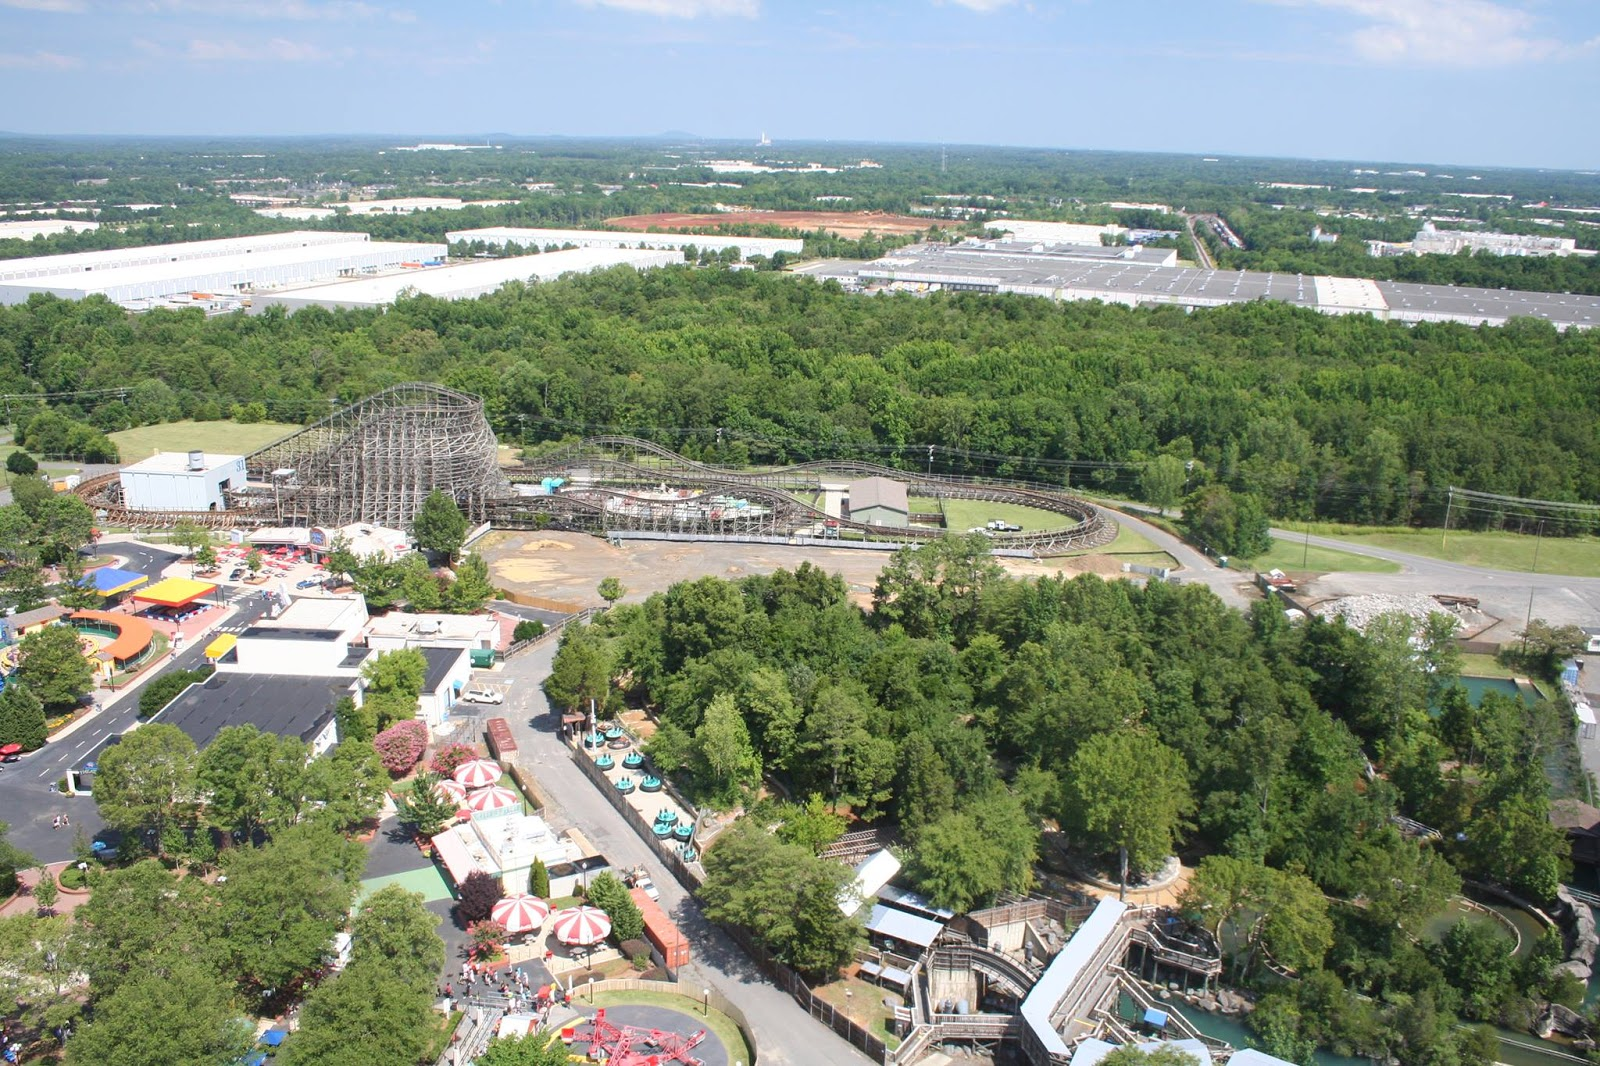 Carowinds 2015 Plans! : Theme Park News & Construction!